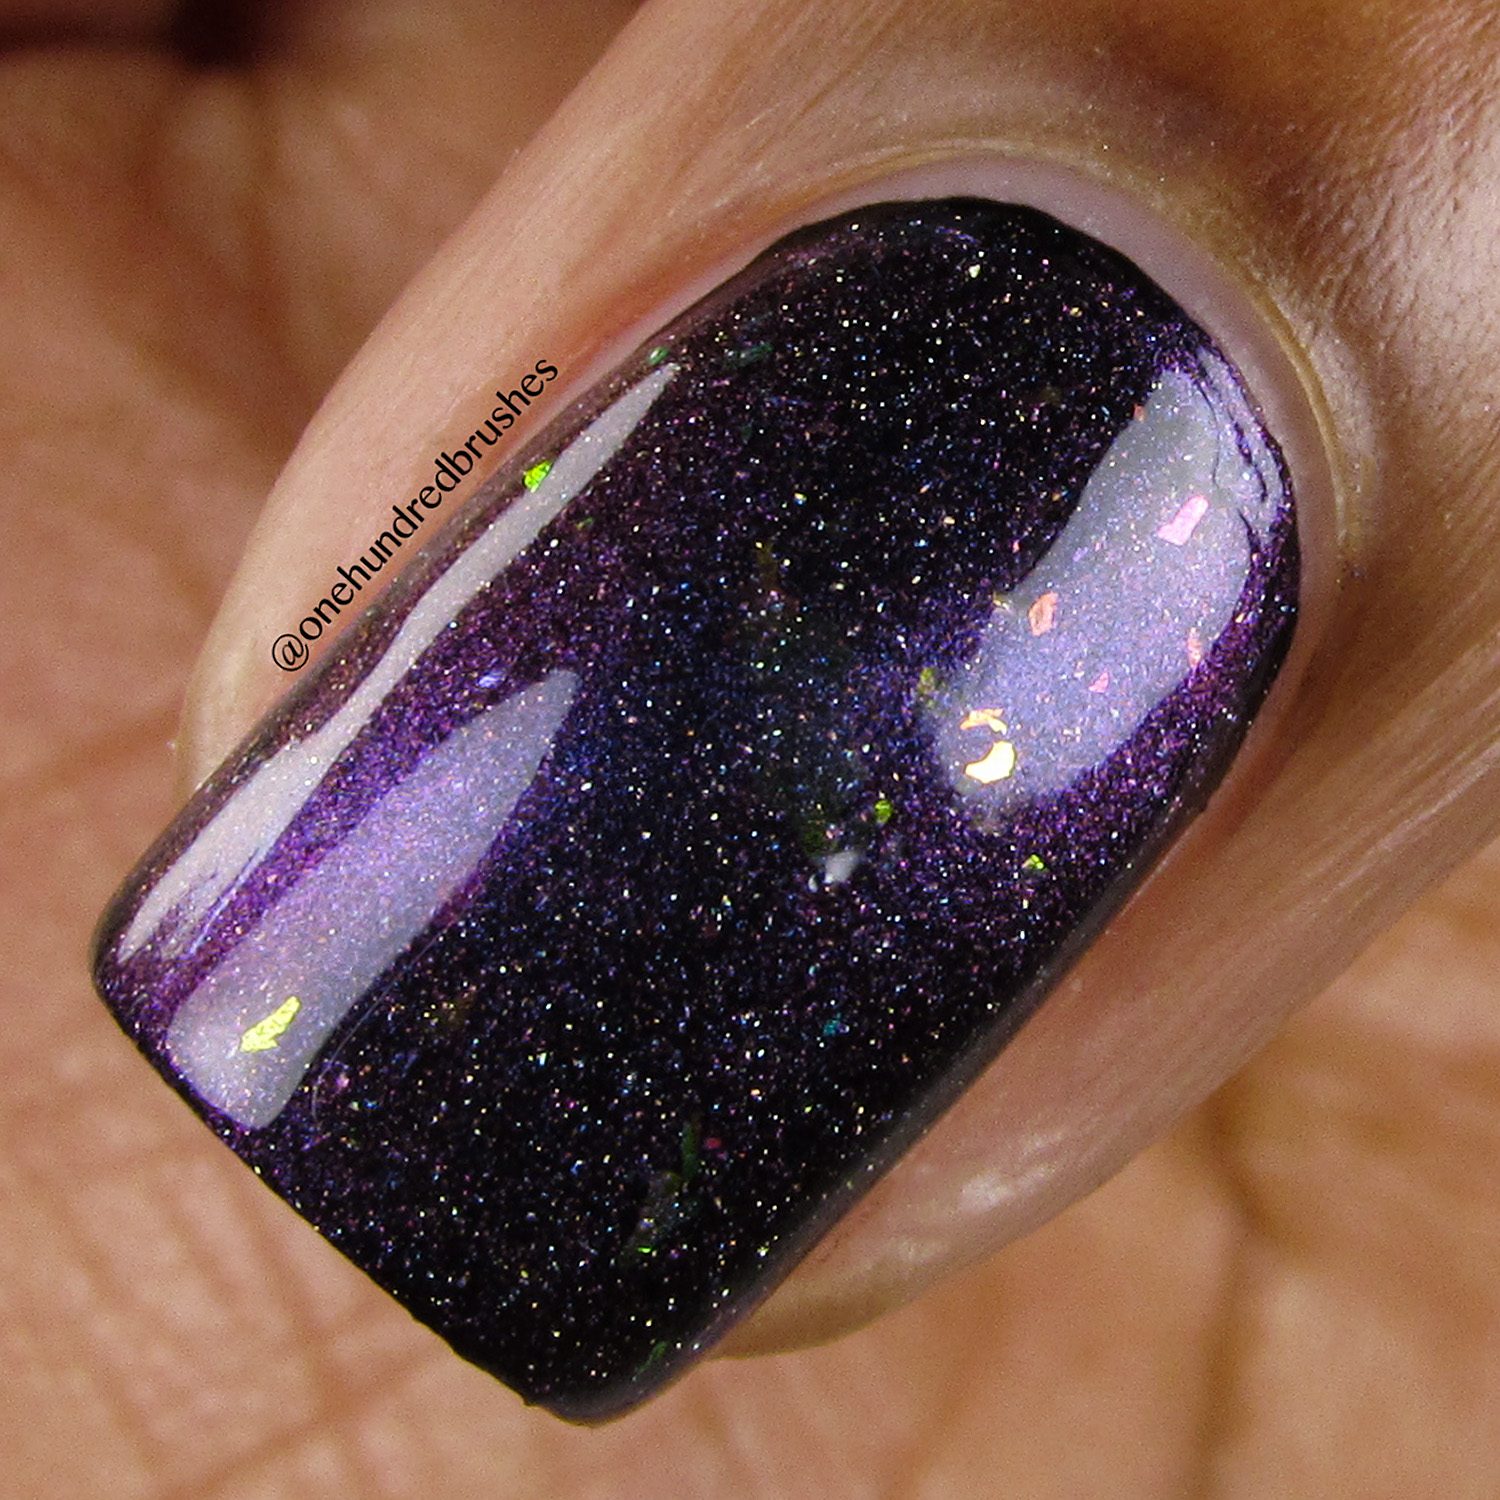 Taking up Space (over black) - Macro - Vapid Lacquer - May Releases 2018